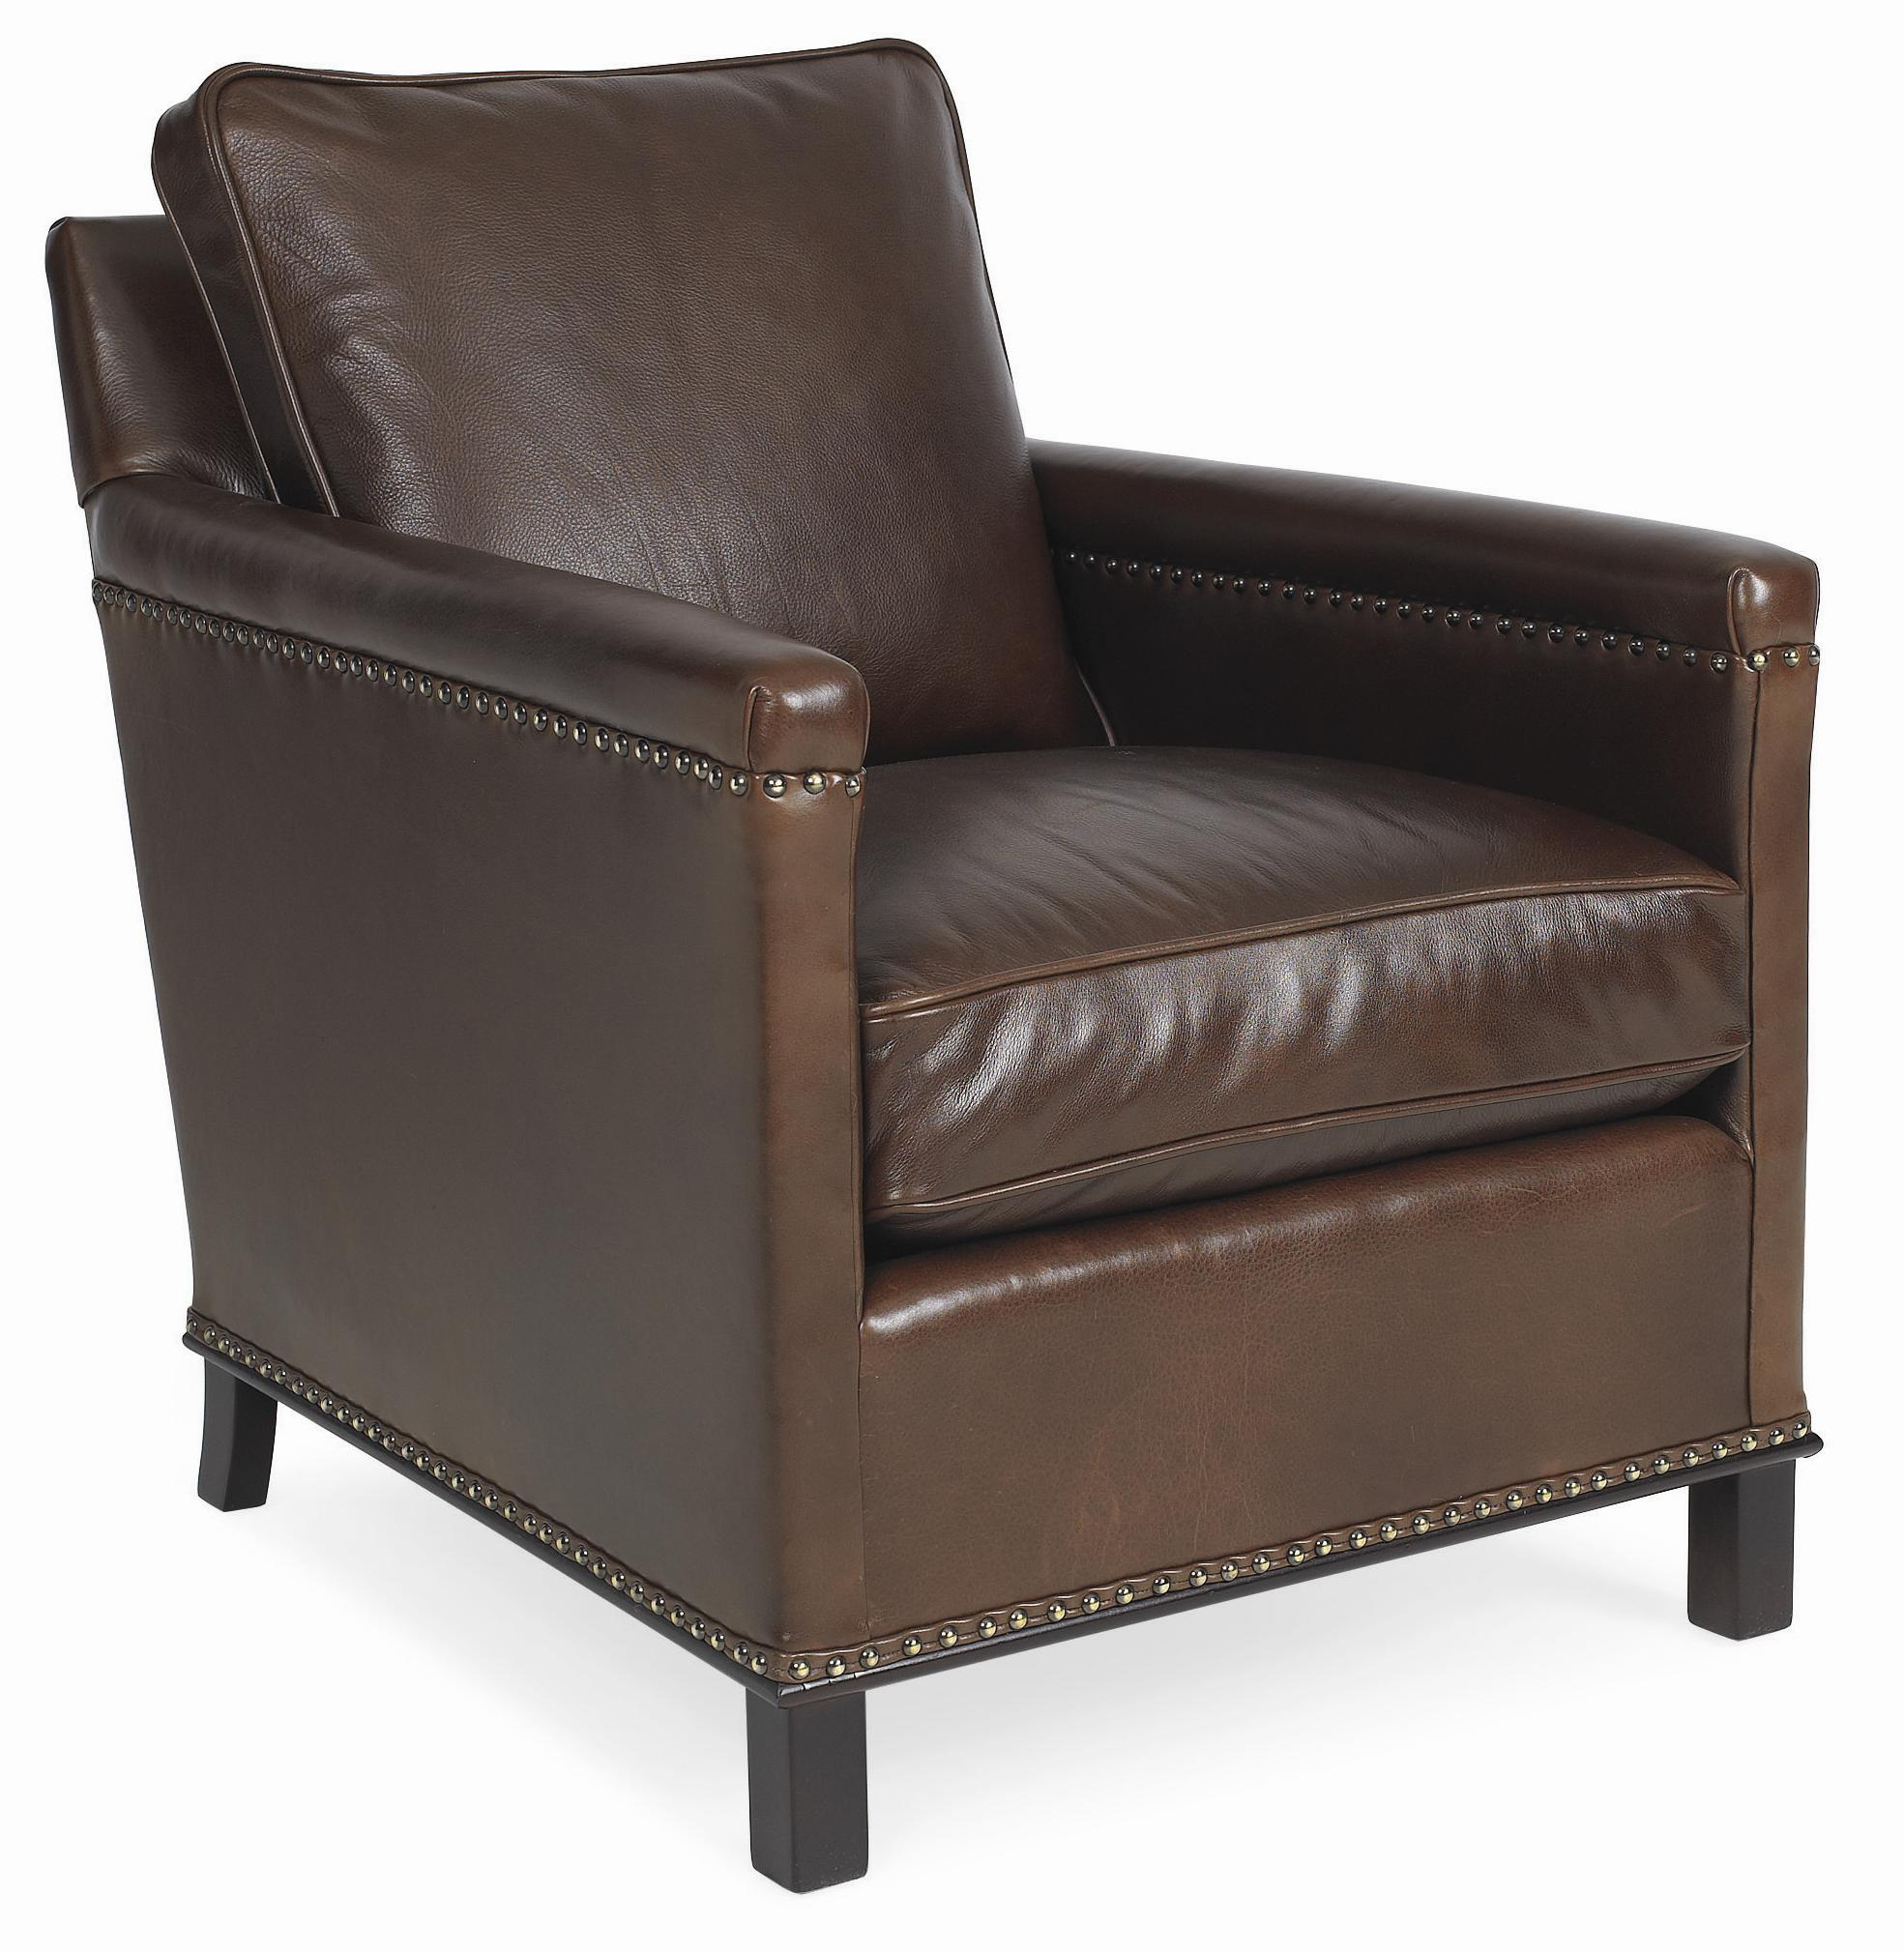 Gotham Upholstered Chair by C.R. Laine at Alison Craig Home Furnishings